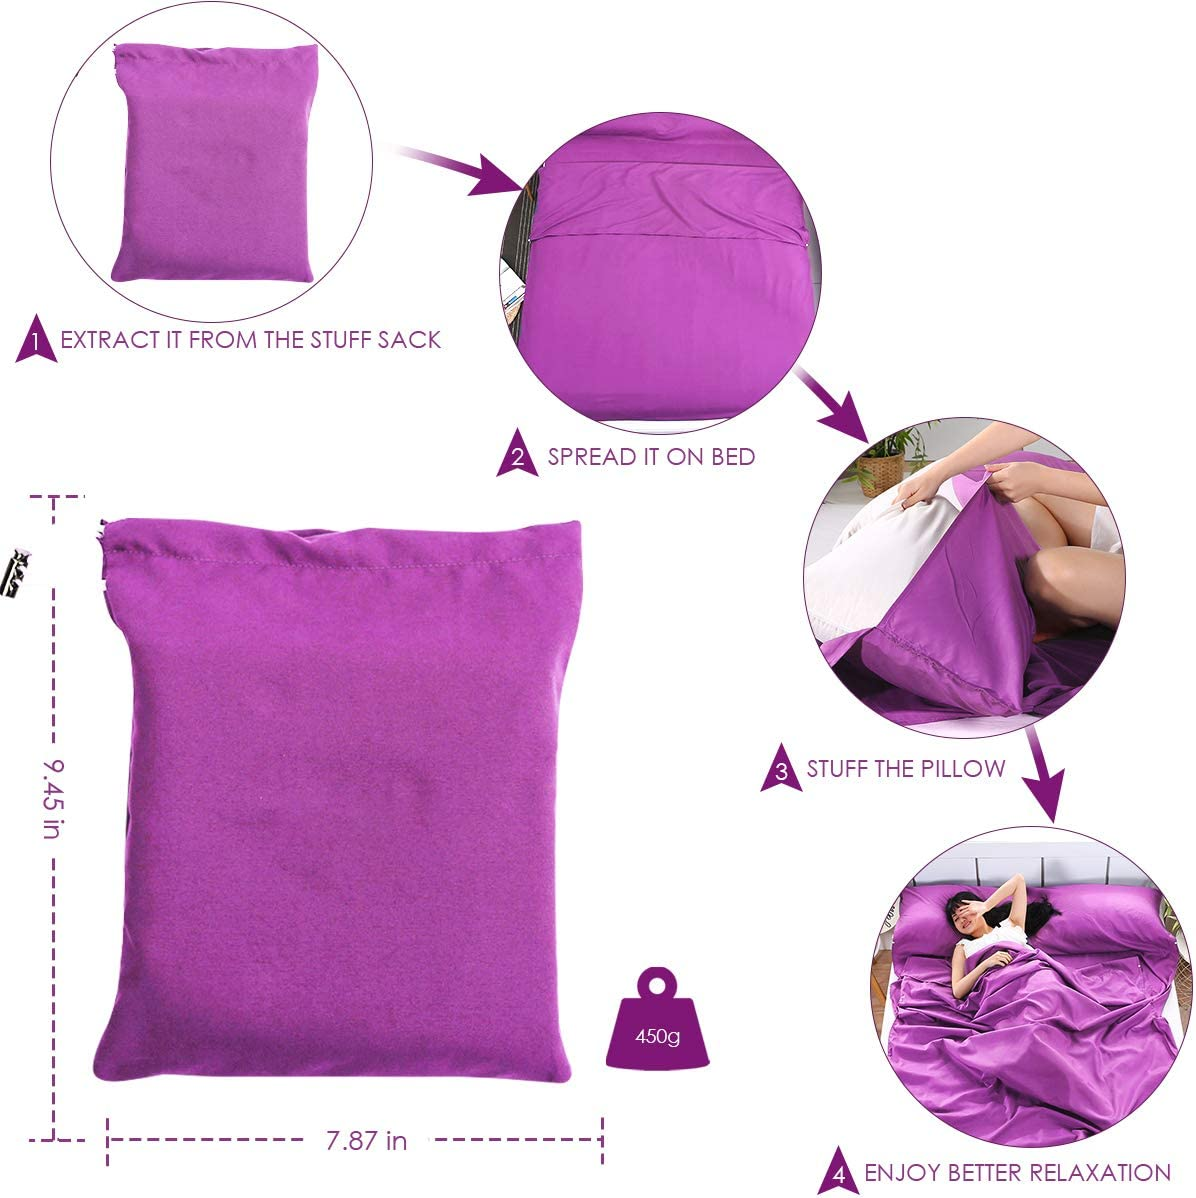 Rehomy Sleeping Bag Liner 82.7 /× 47.2in Sleep Bag Sack for Outdoor Hotel Hiking Picnic Portable Lightweight Travel Camping Sheet